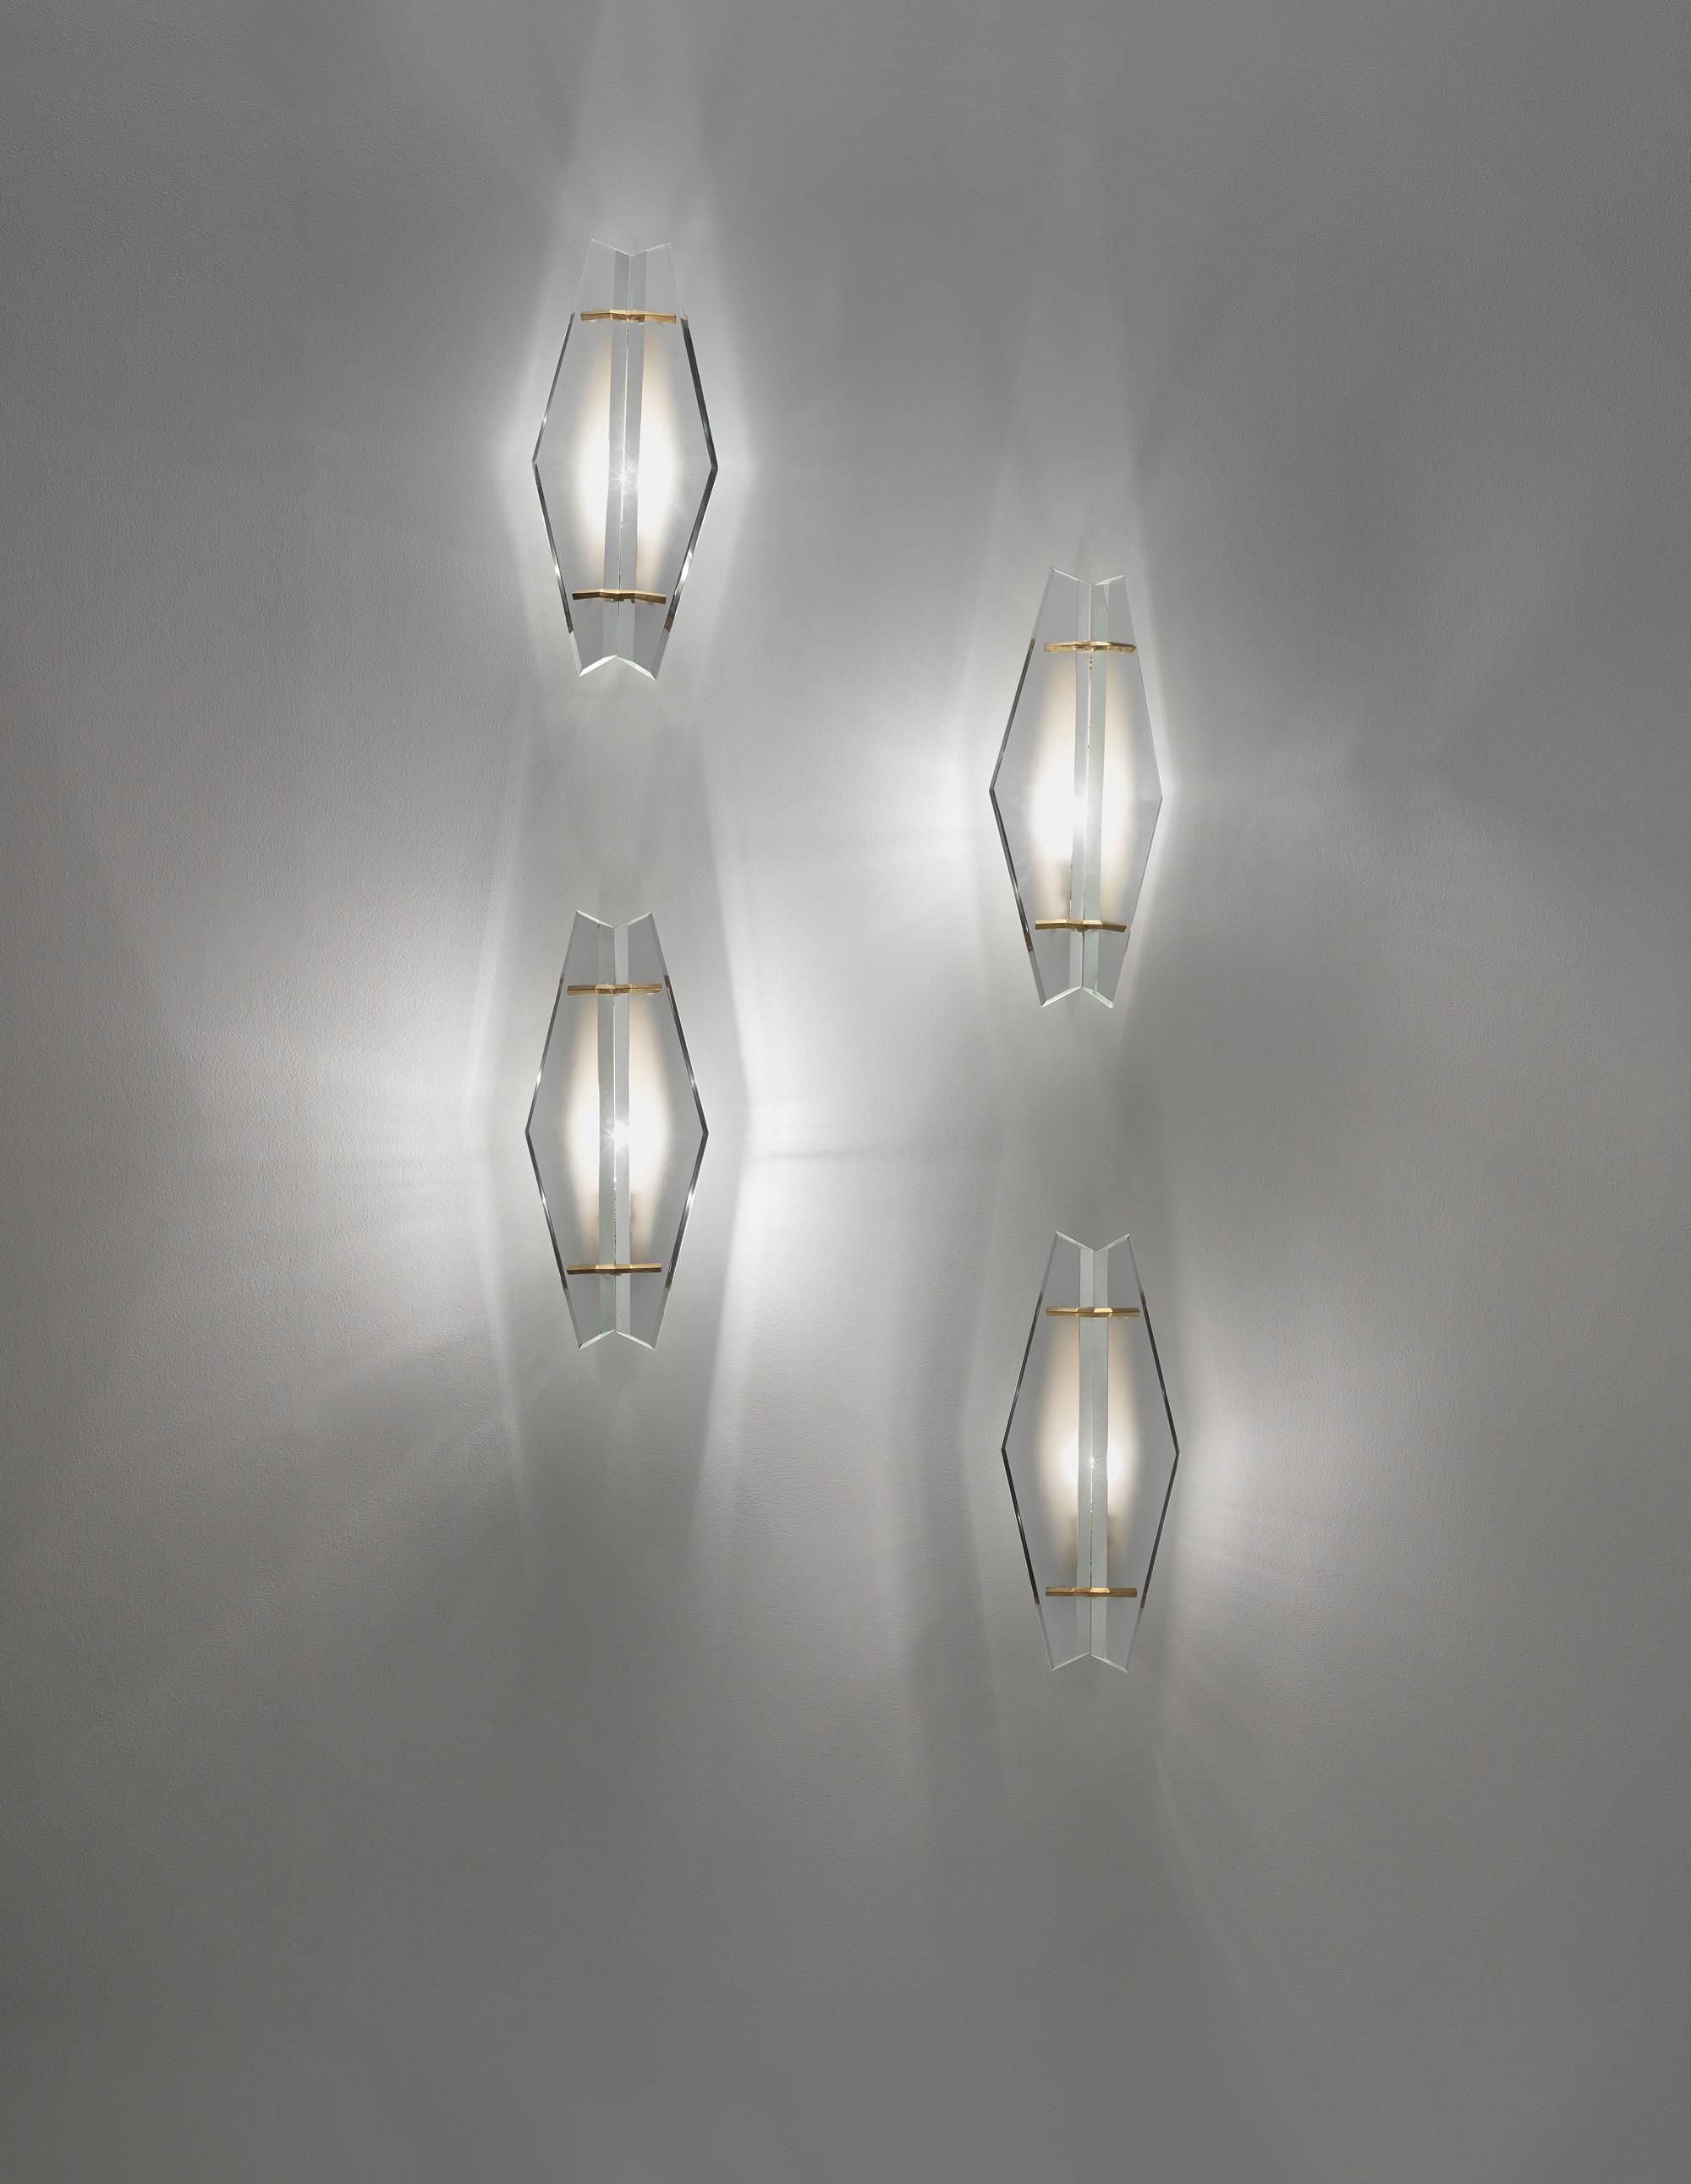 Max Ingrand Set Of Four Wall Lights Model No 1943 Circa 1960 Frosted Gl Br Each 43 8 X 21 16 Cm 17 1 4 6 In